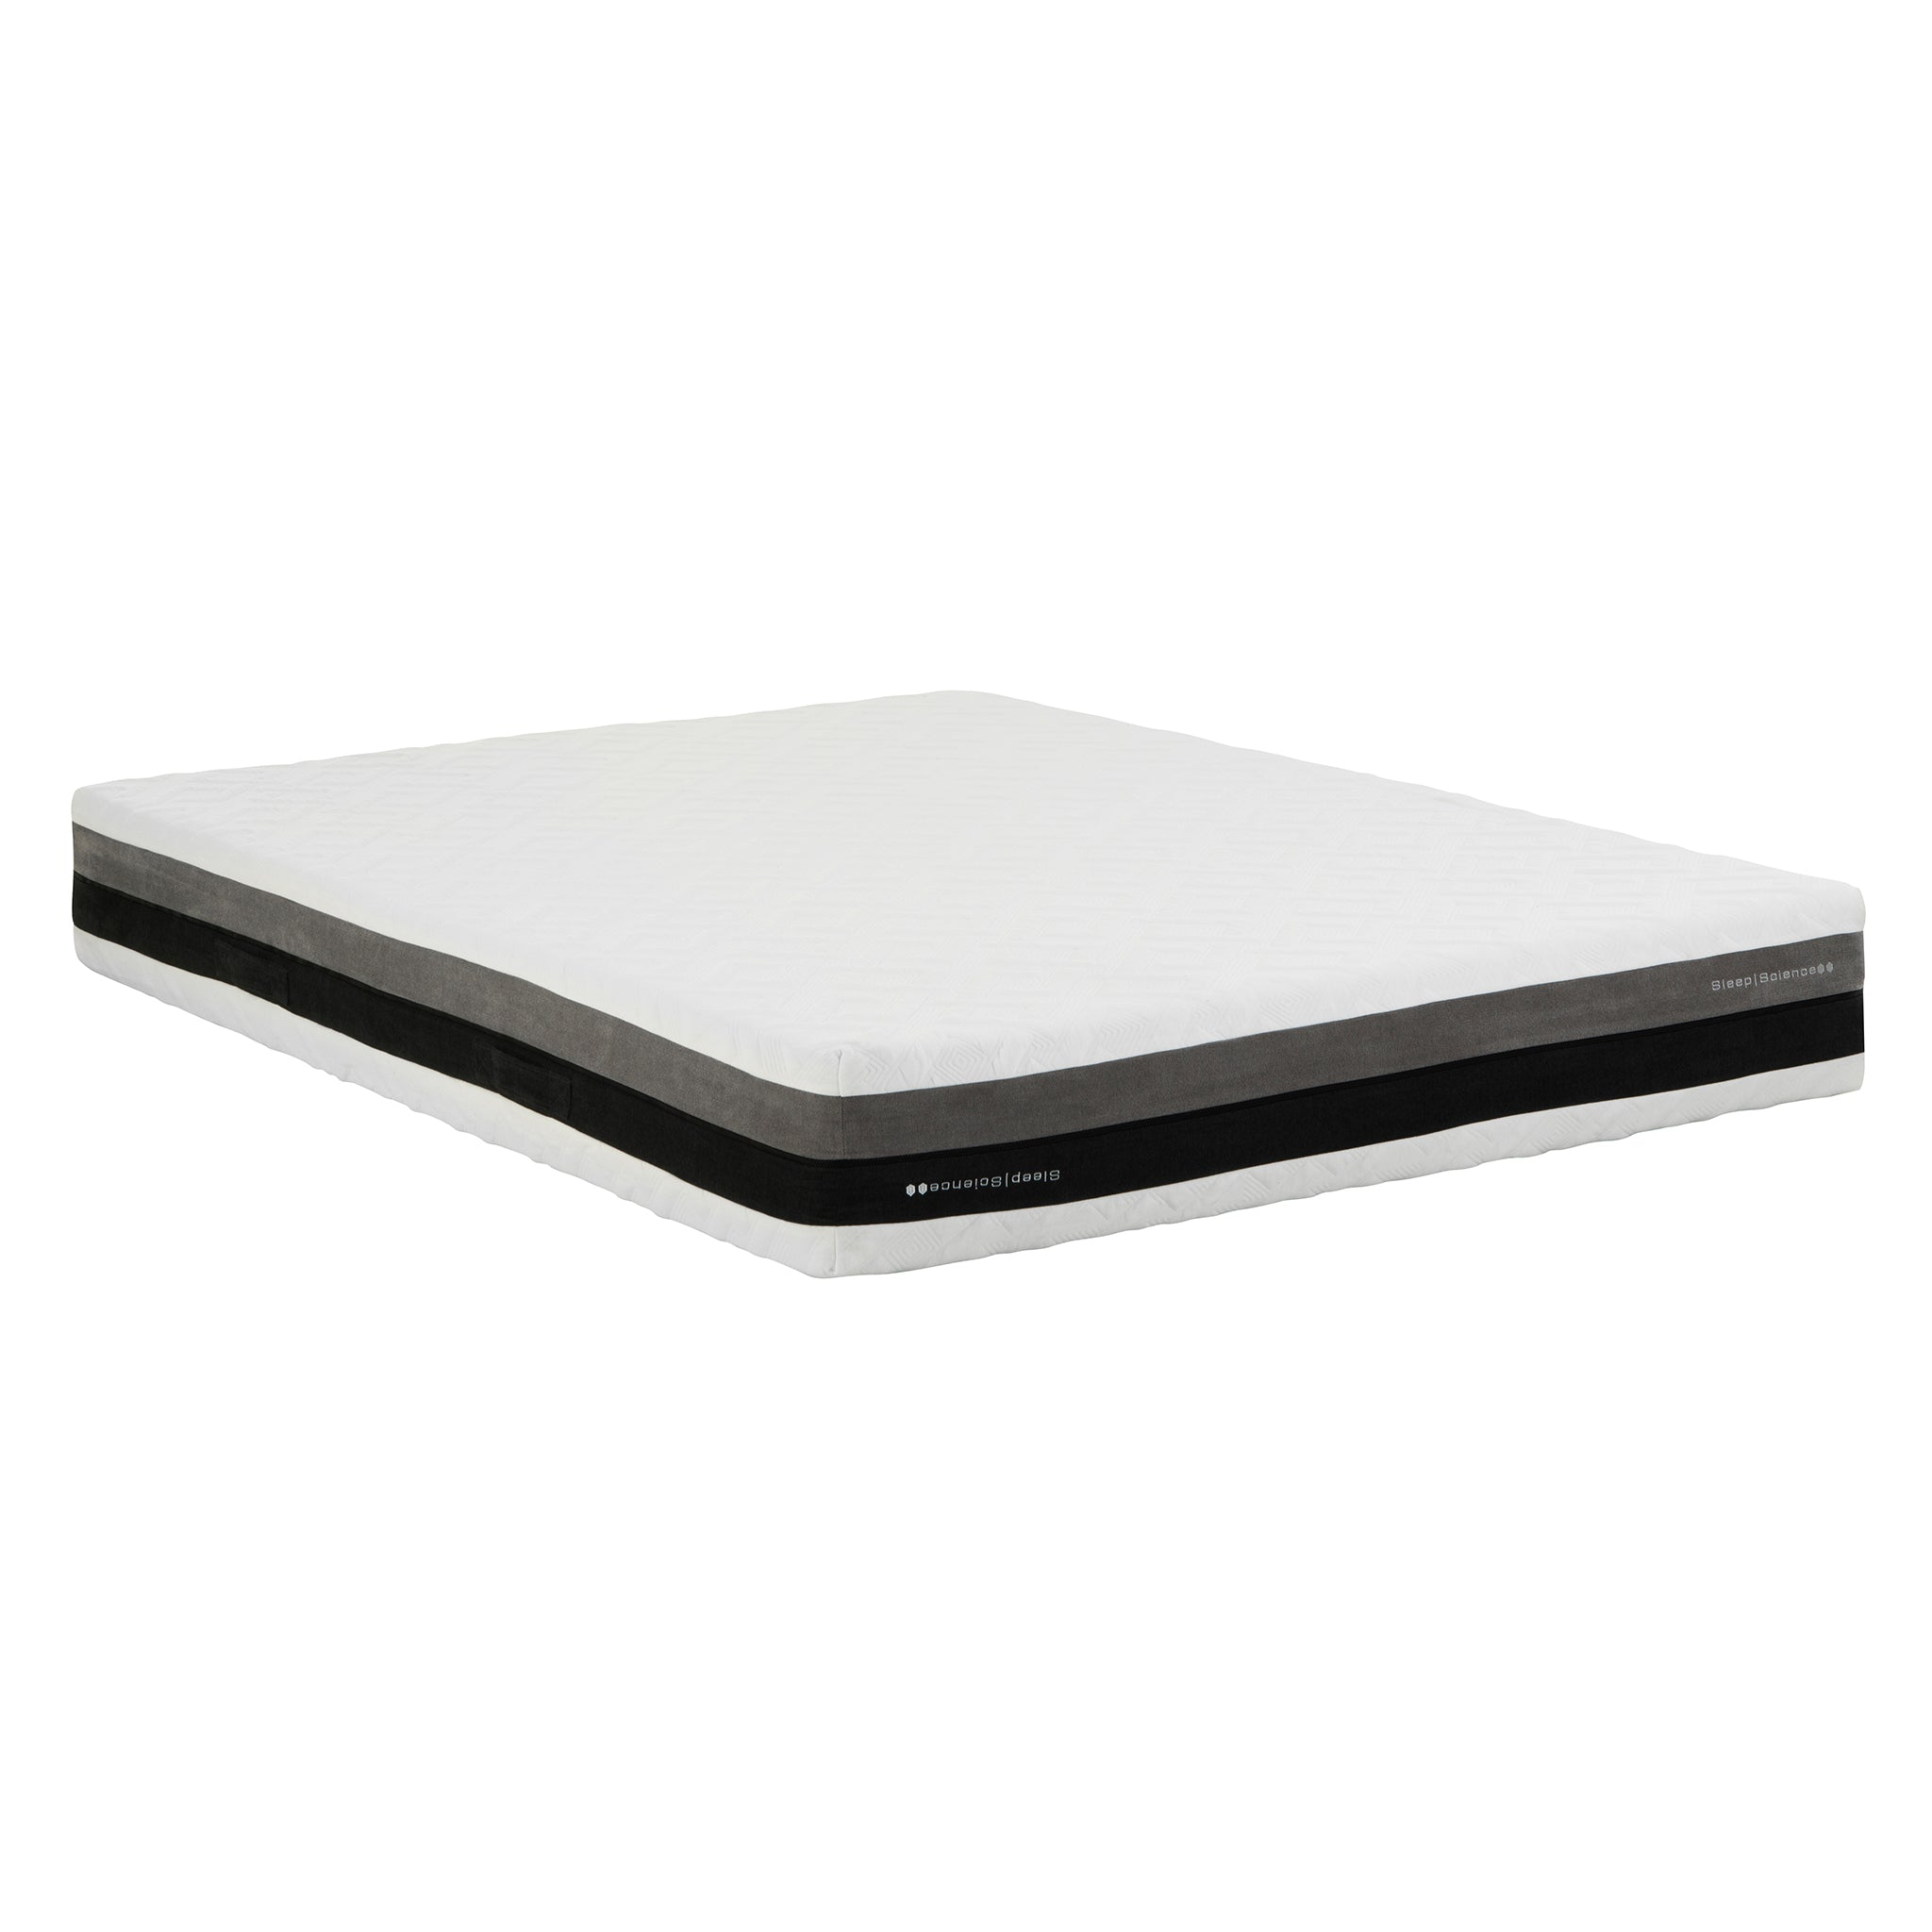 "10"" iFlip Solano 2-Sided Gel-Infused Memory Foam Collection"